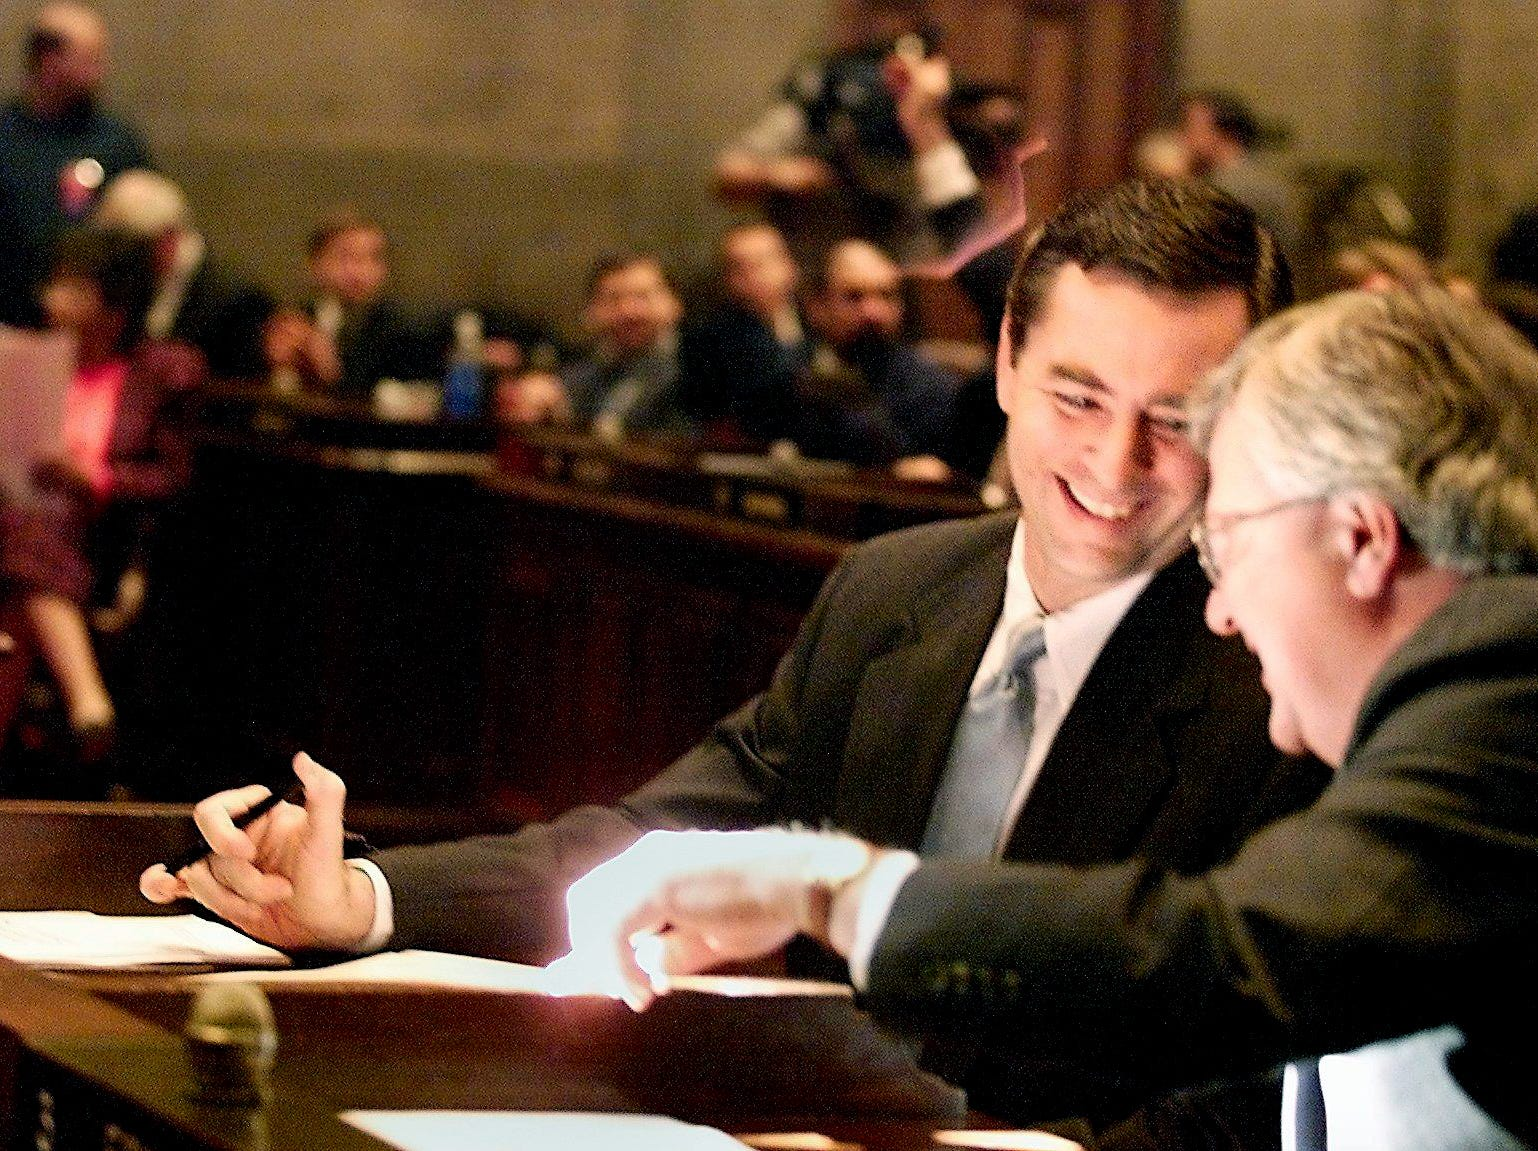 Newly sworn in, Glen Casada (R) chats with his state House of Representatives colleague Joe Fowlkes on Jan. 8, 2002.